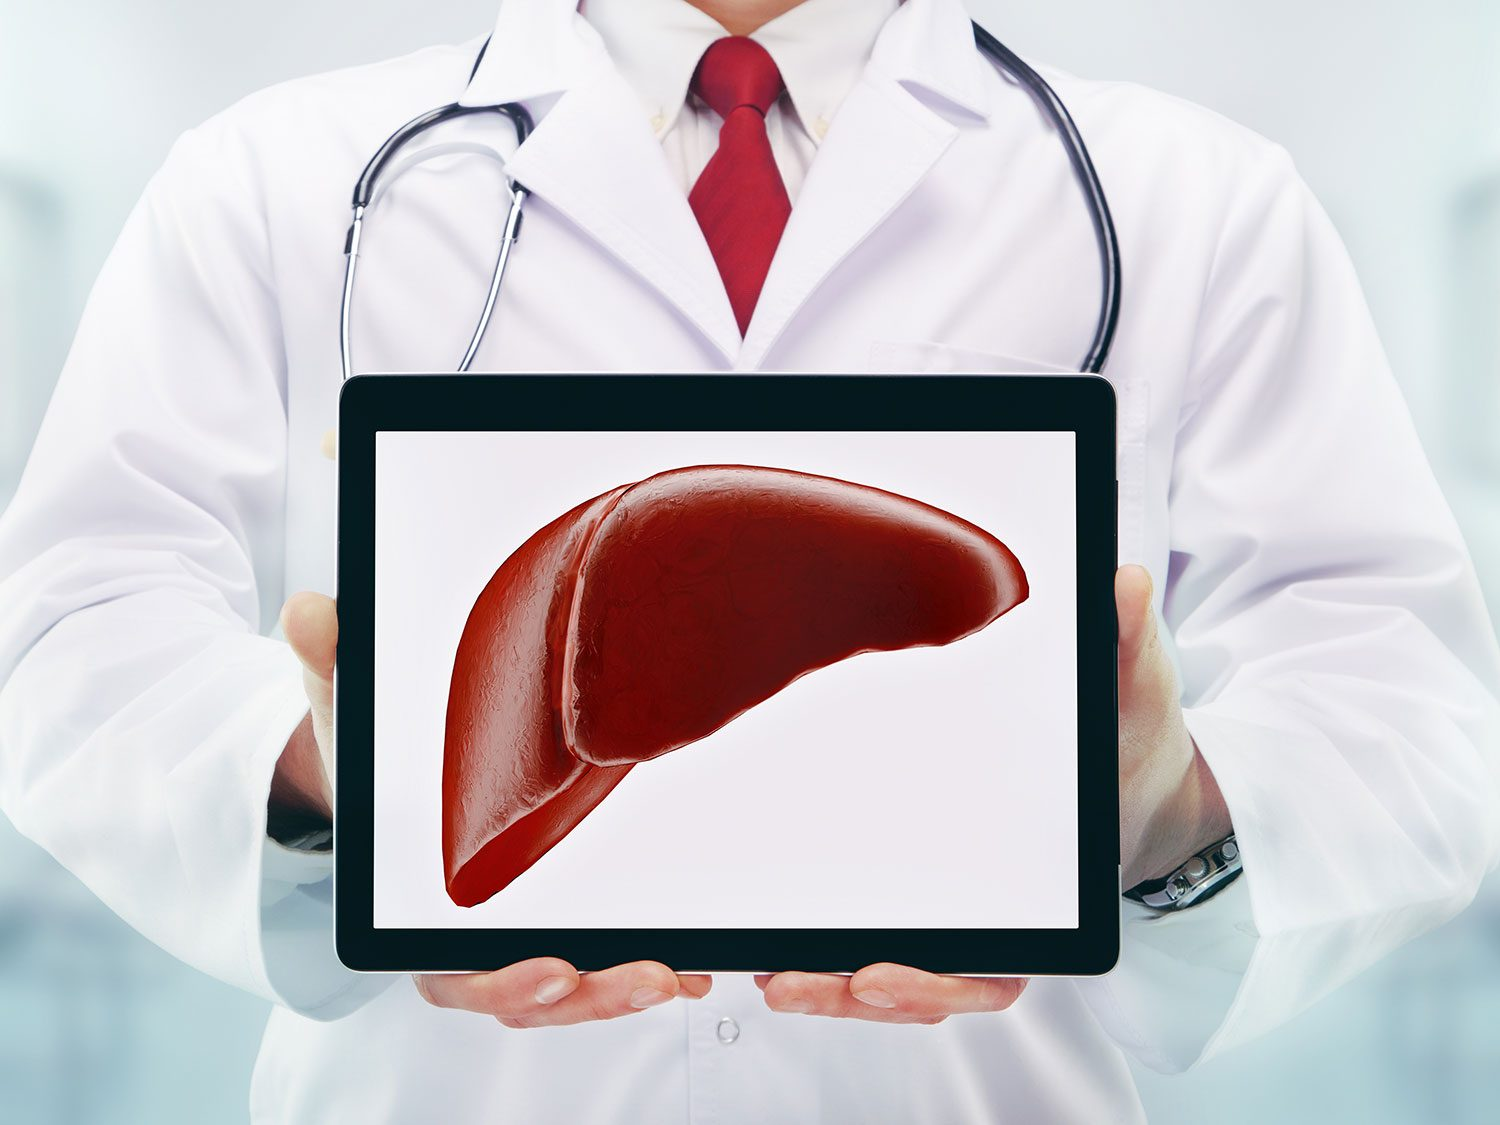 fatty-liver-disease-what-you-need-to-know